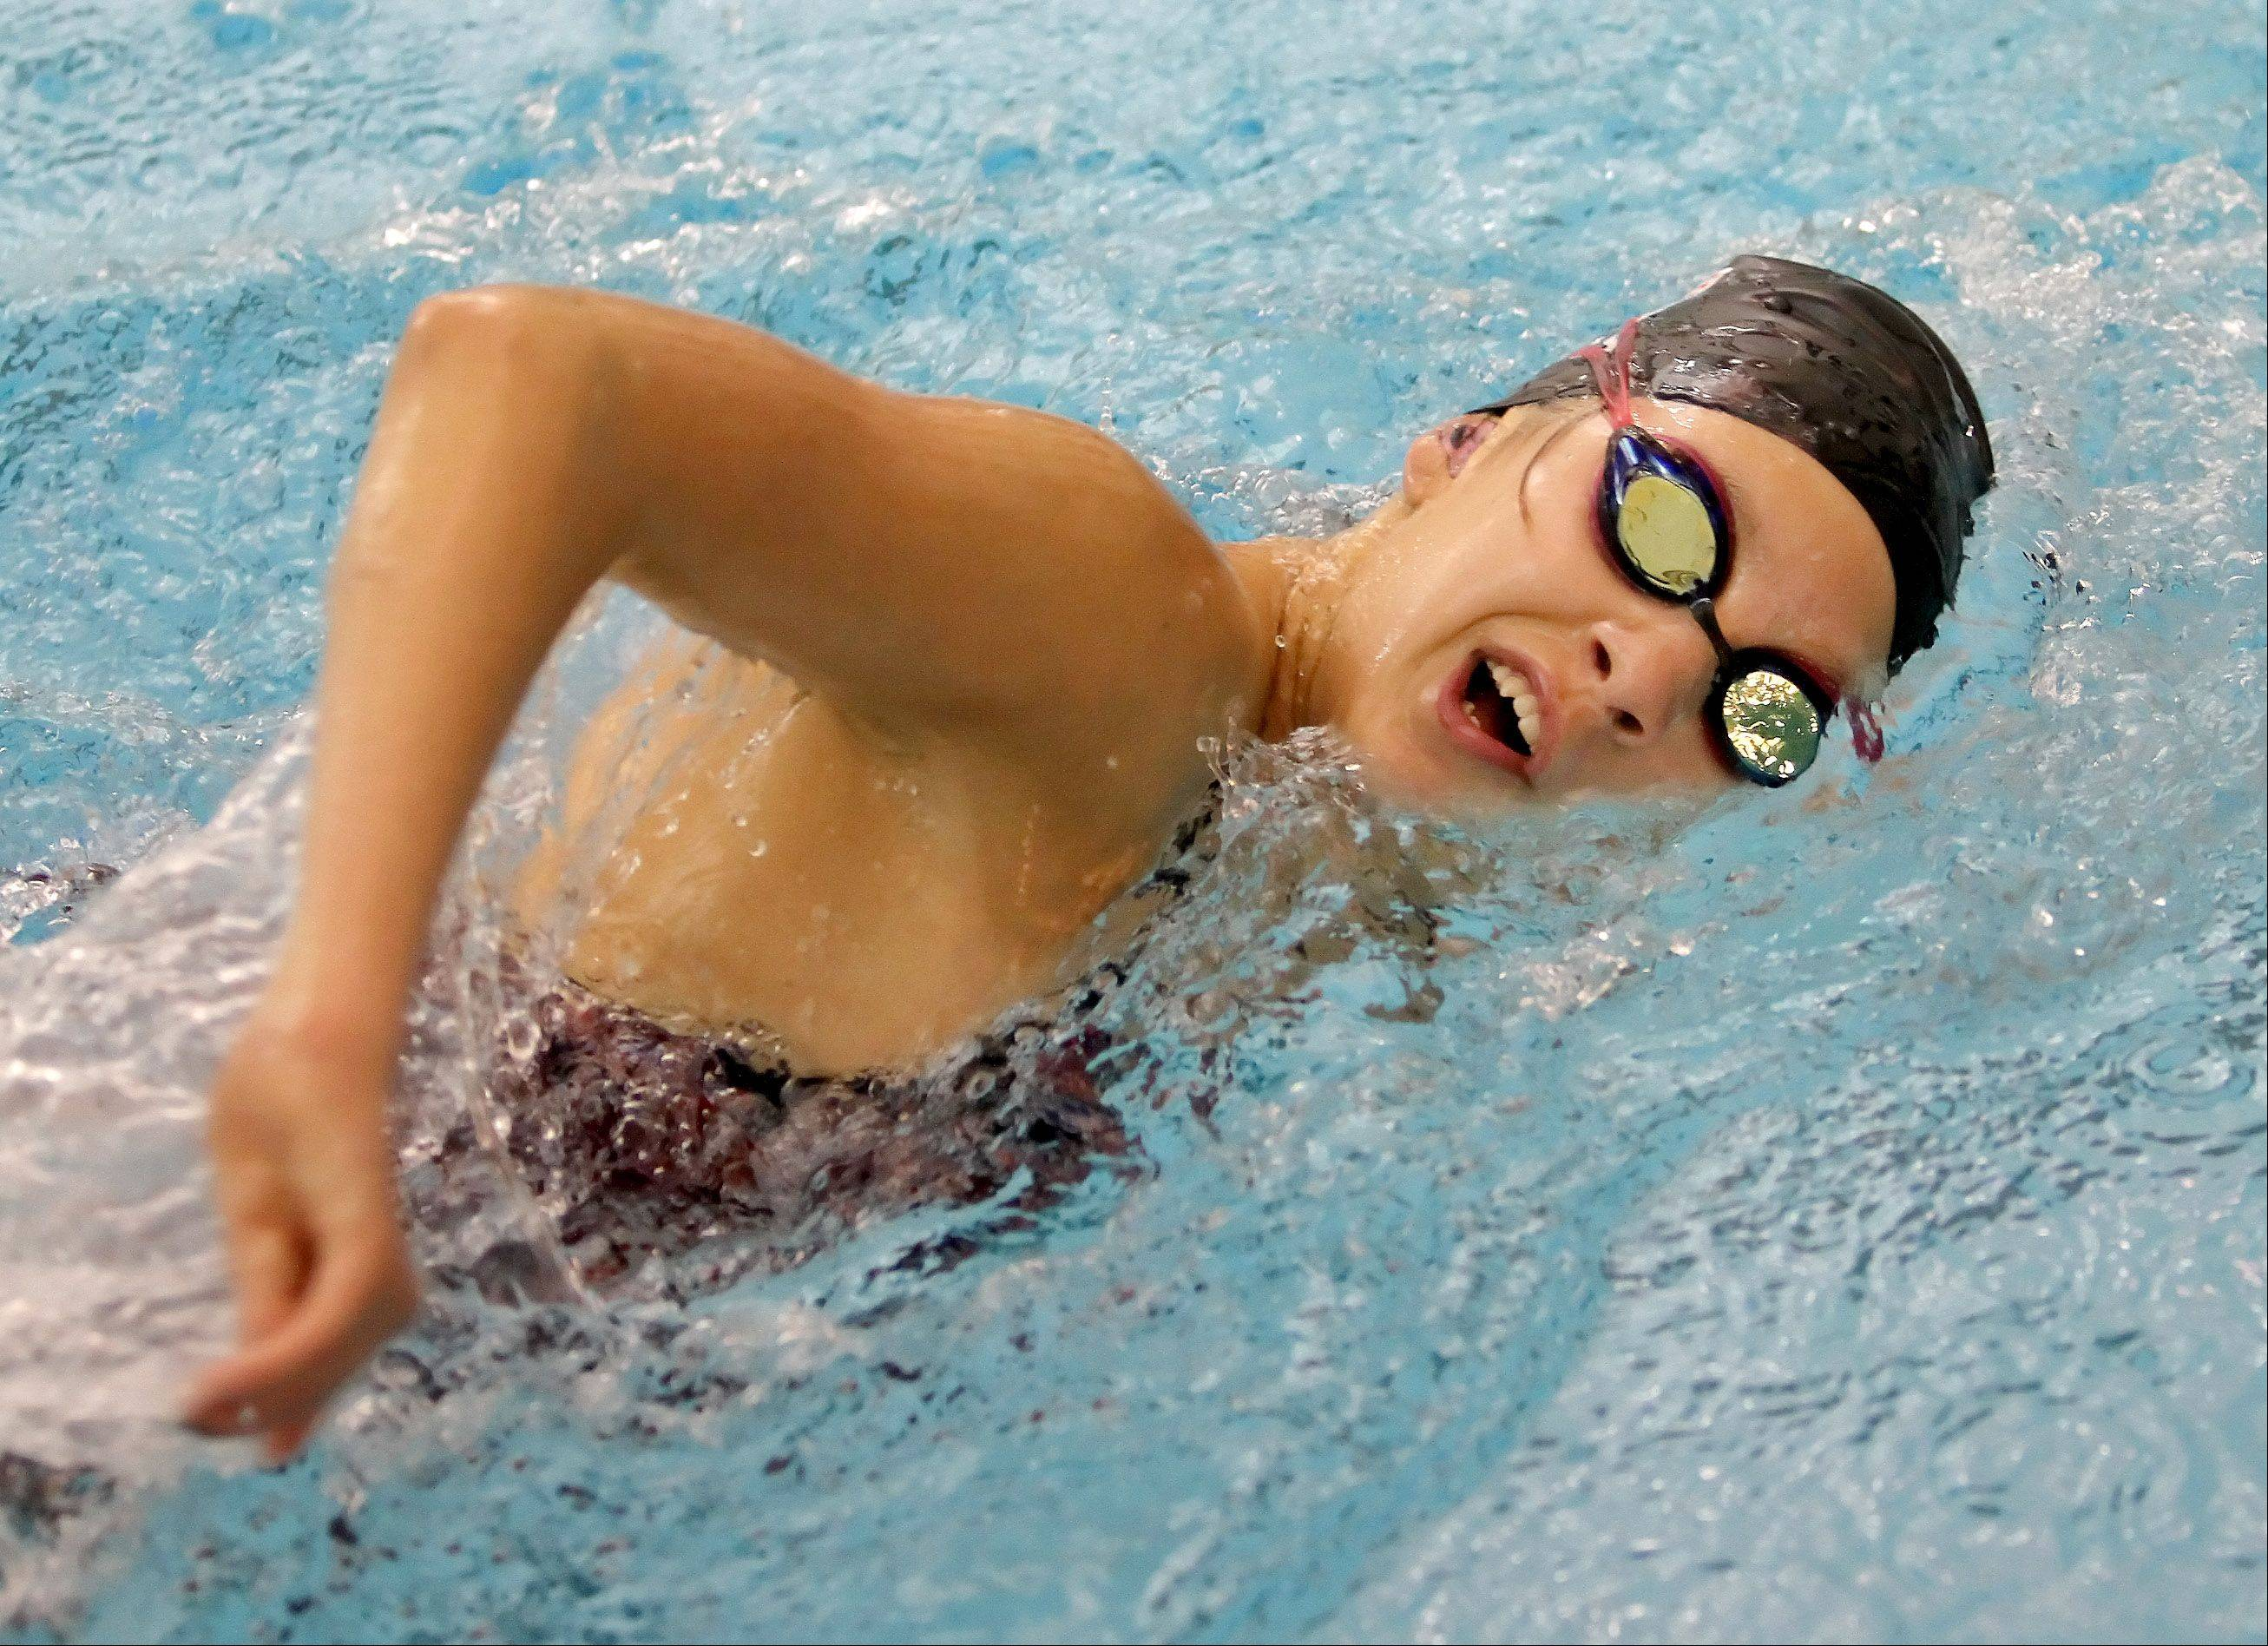 Alyssa Gialamas of Naperville trains at the Waubonsie Valley High School pool.